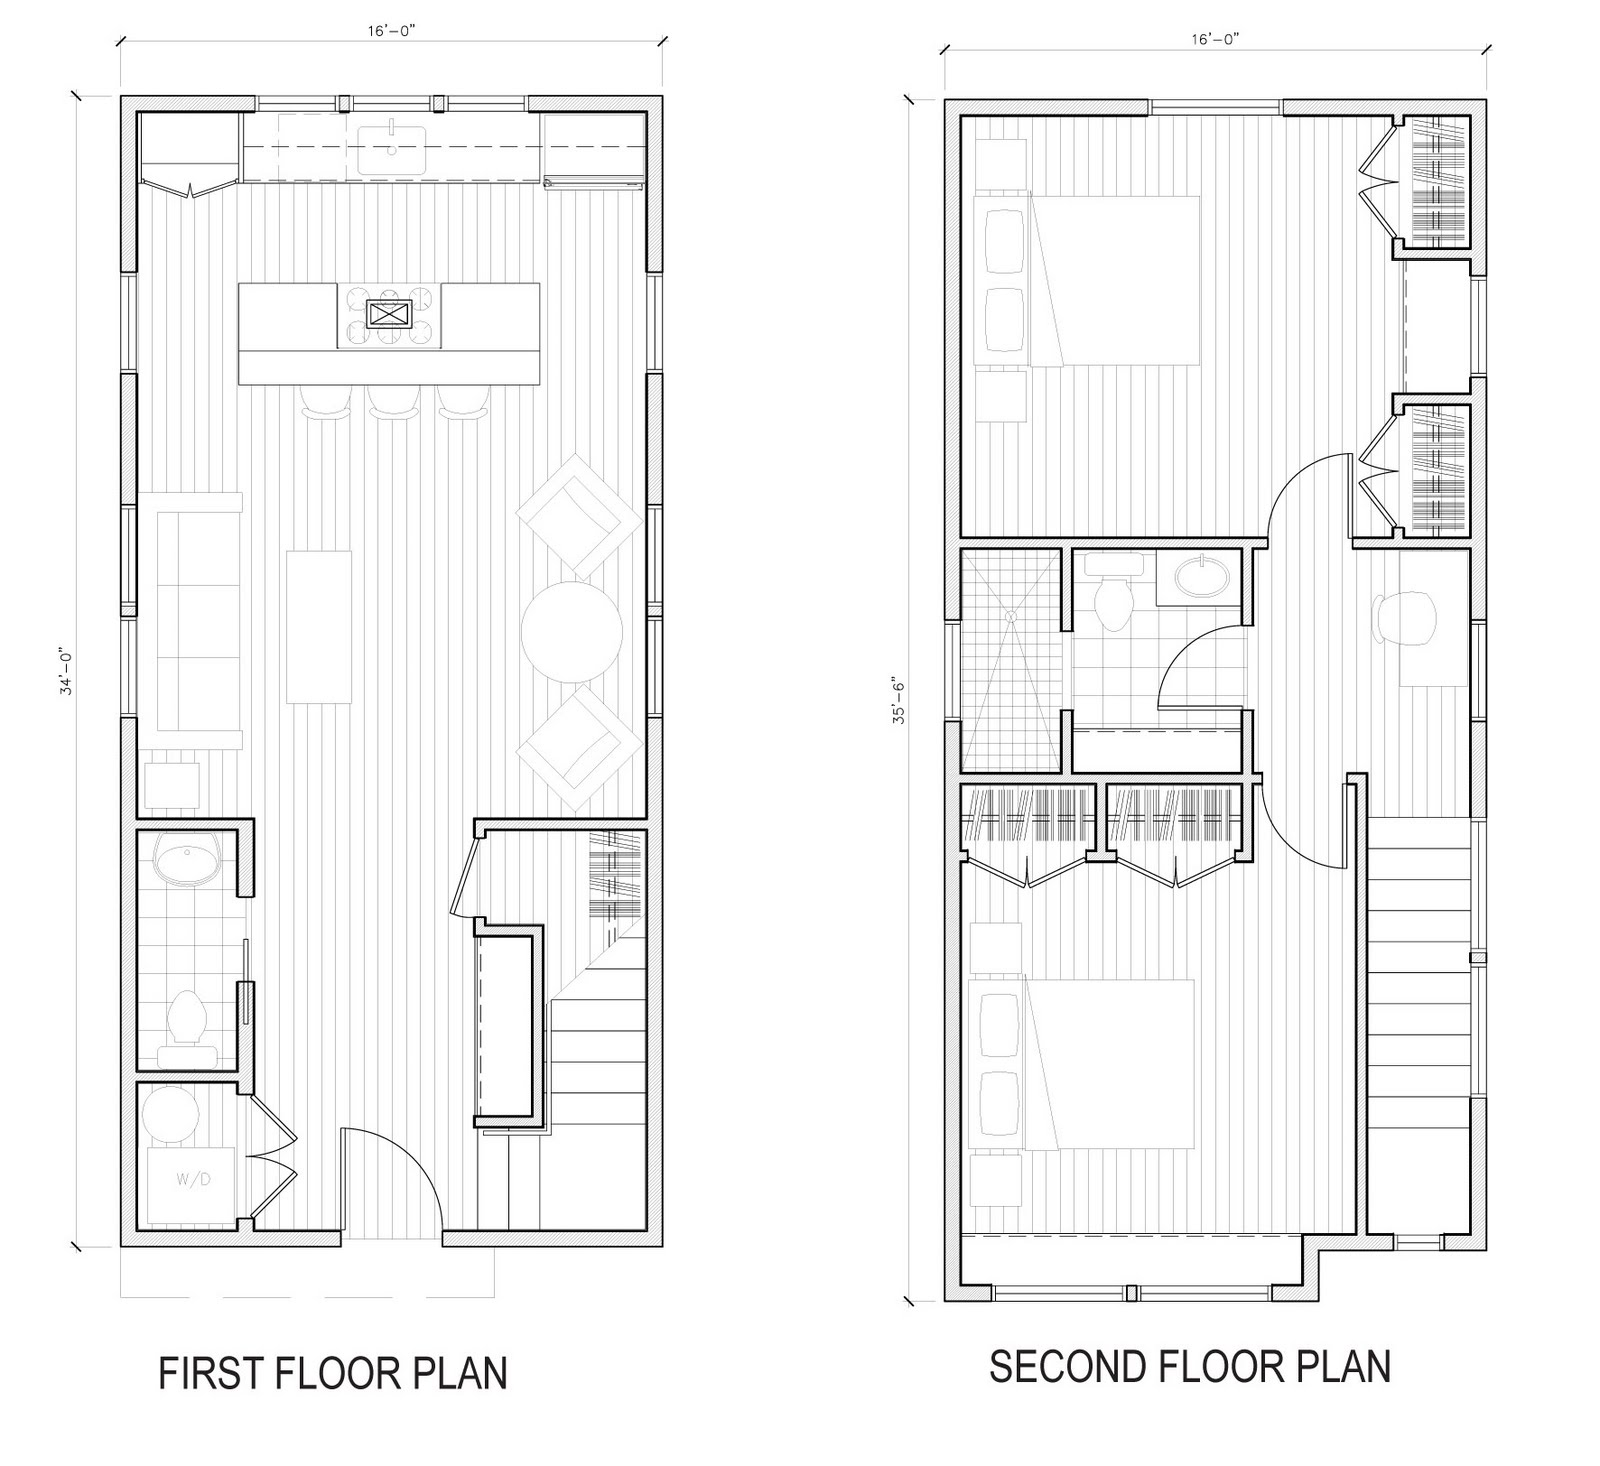 1000 sq ft house plans with loft joy studio design for 1000 square foot house plans with loft